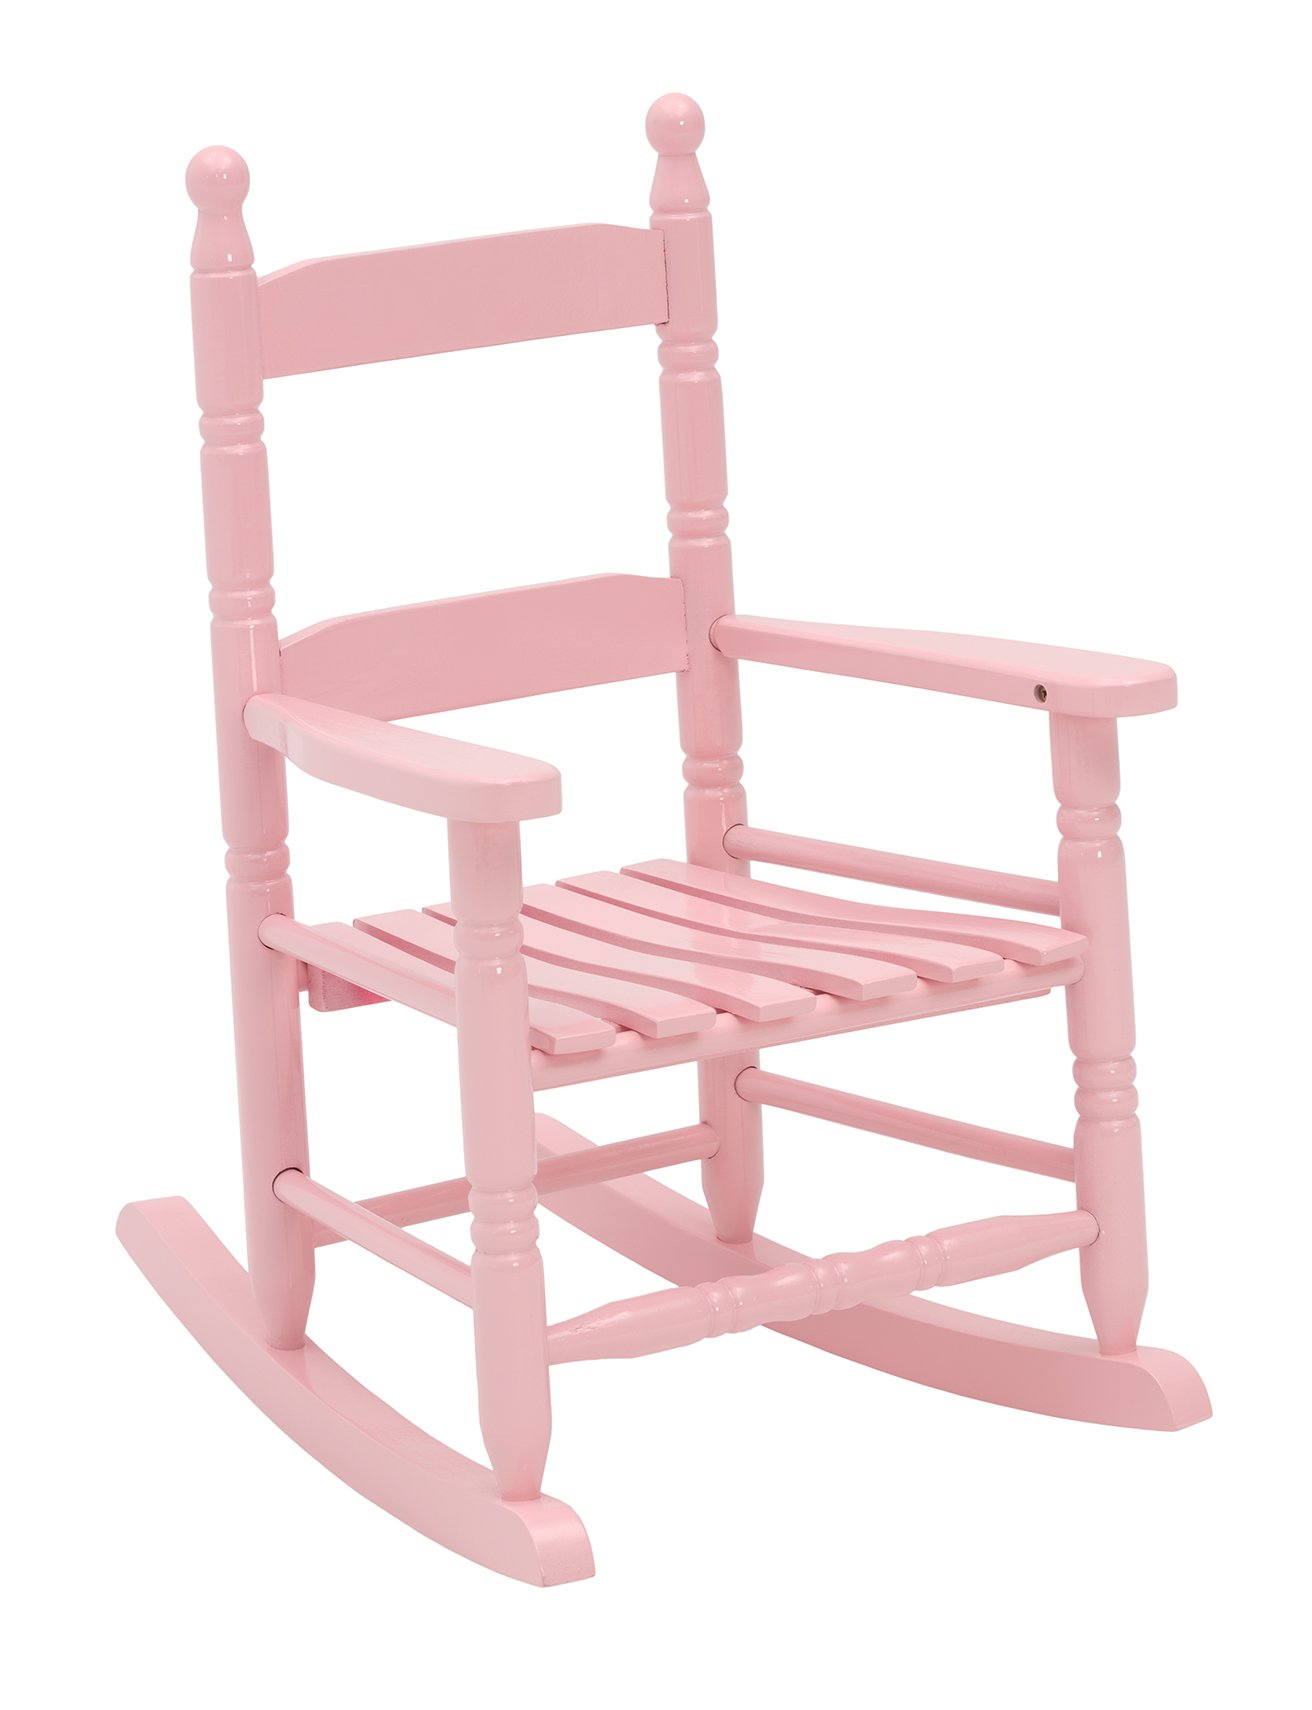 Jack Post KN-10P Knollwood Classic Child's Porch Rocker, Pink